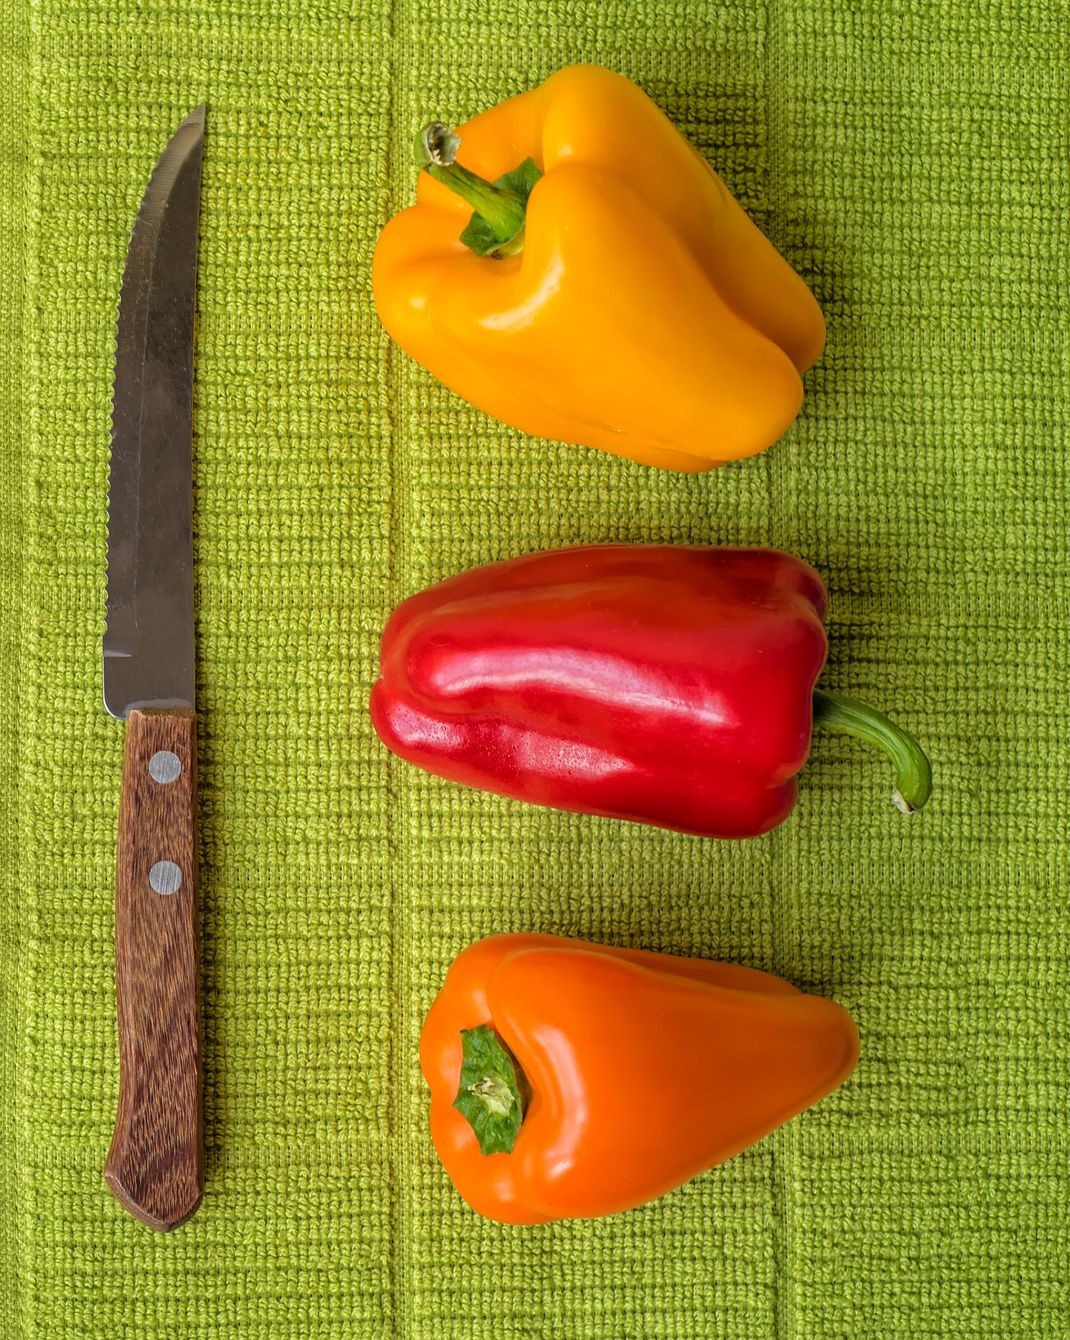 snack tips ideas bell peppers